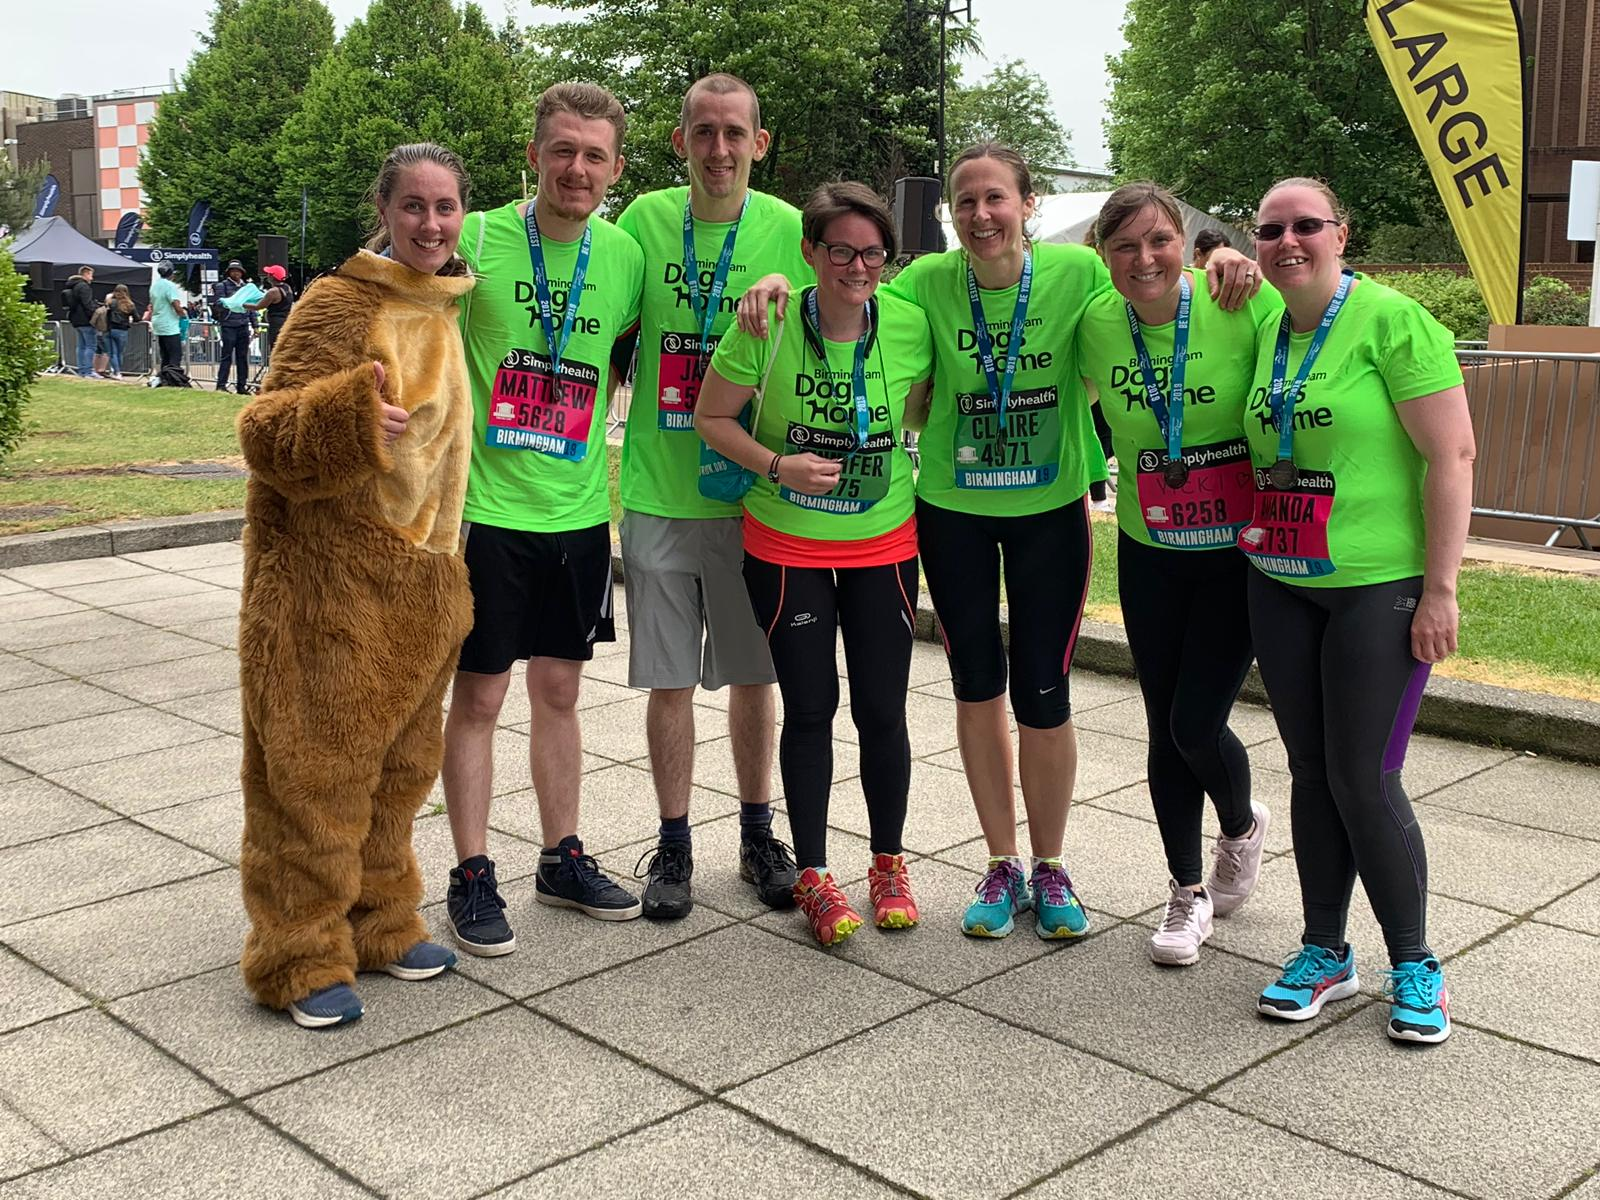 dog's home runners